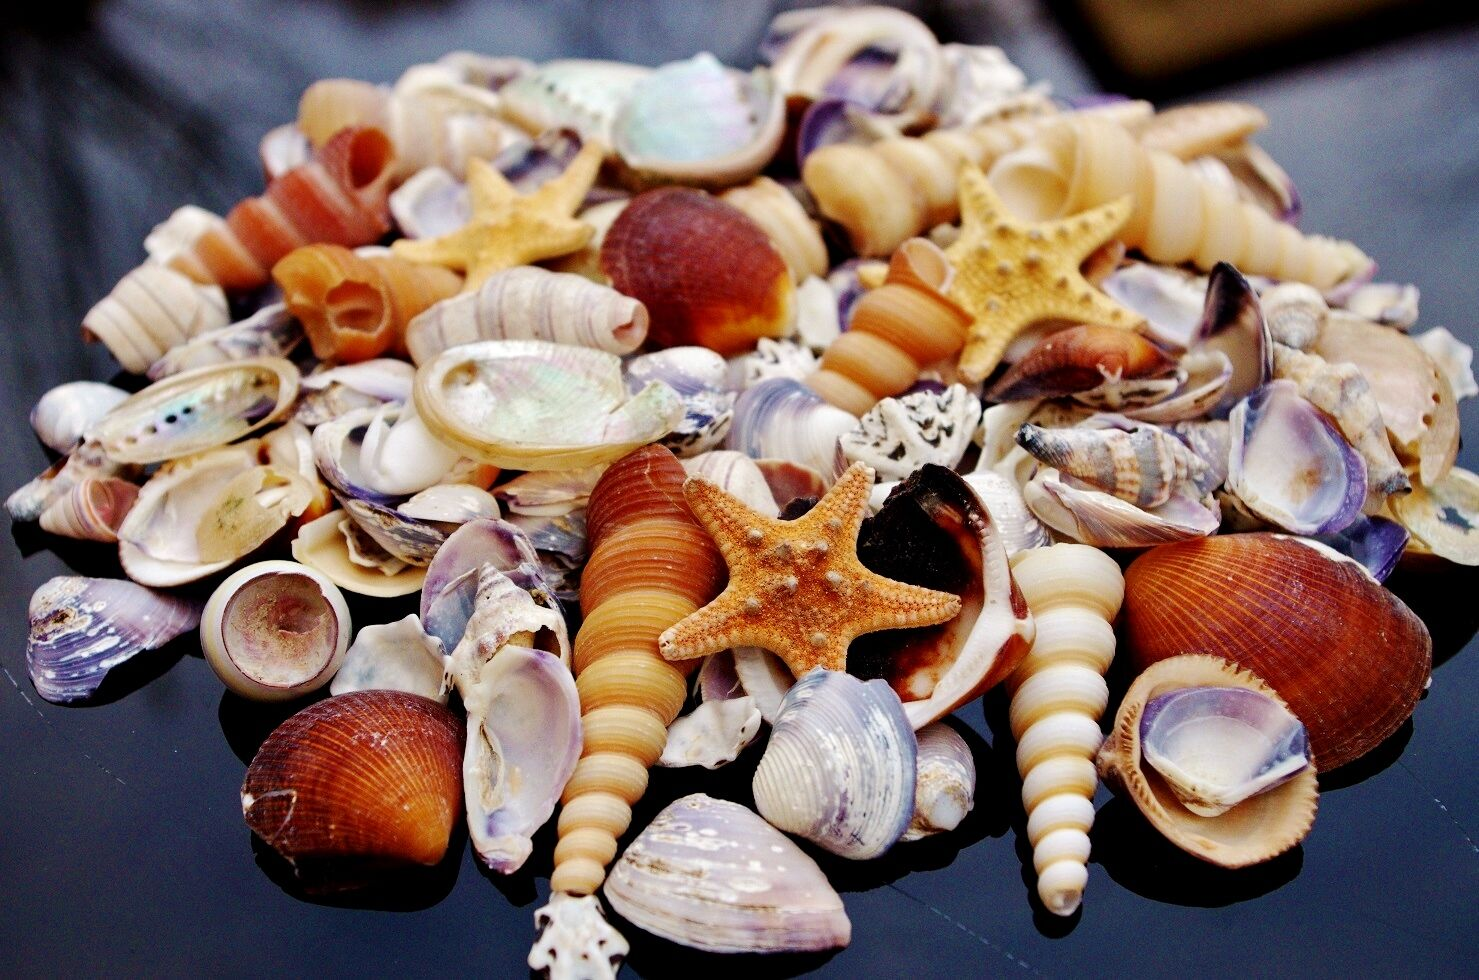 Crushed SeaShells and Starfish Beach Mixed Sea Shells 300g Bag